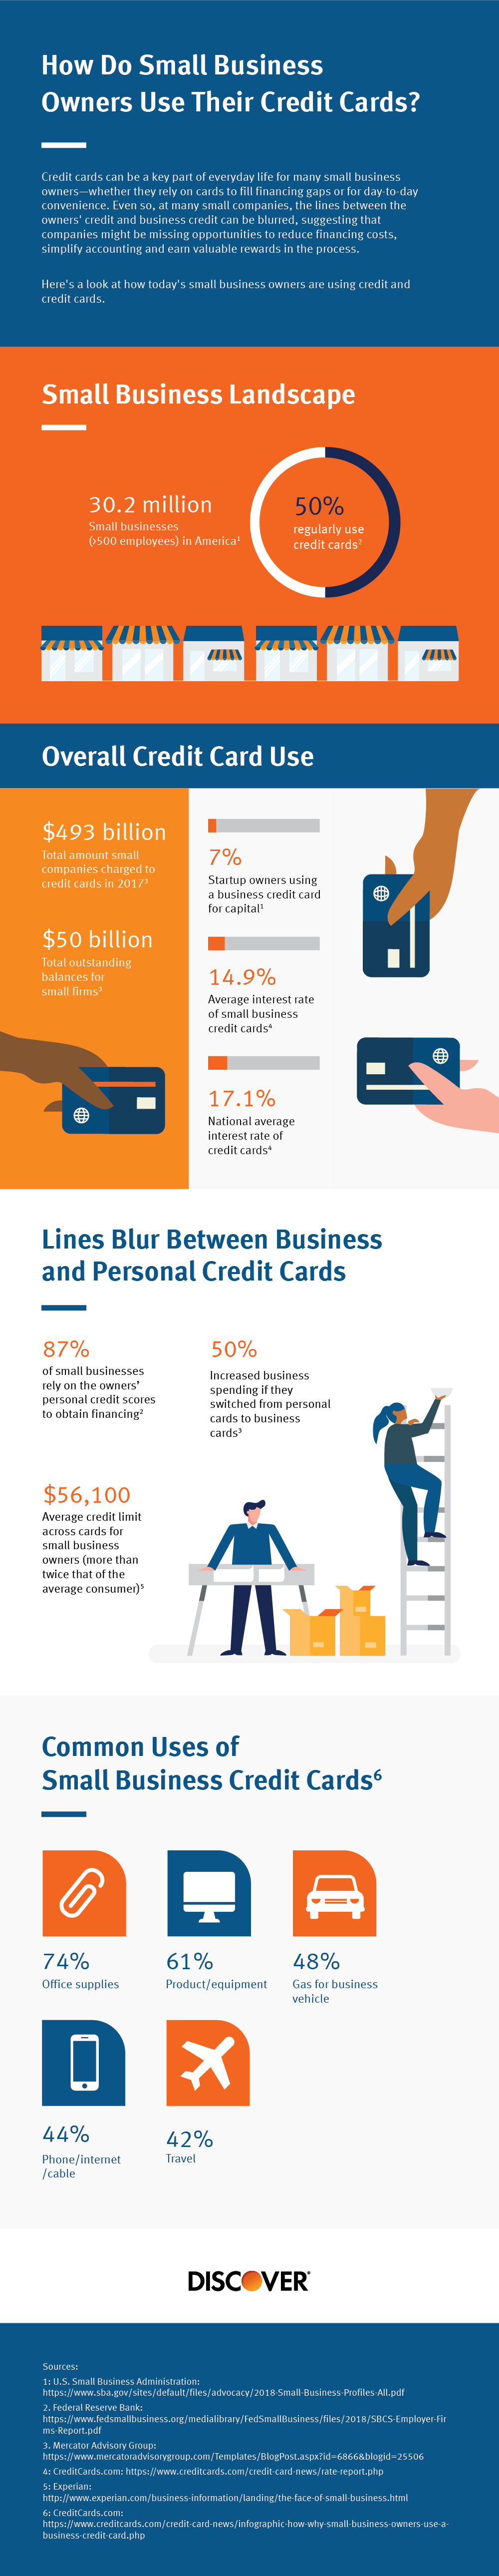 infographic of small business credit card data